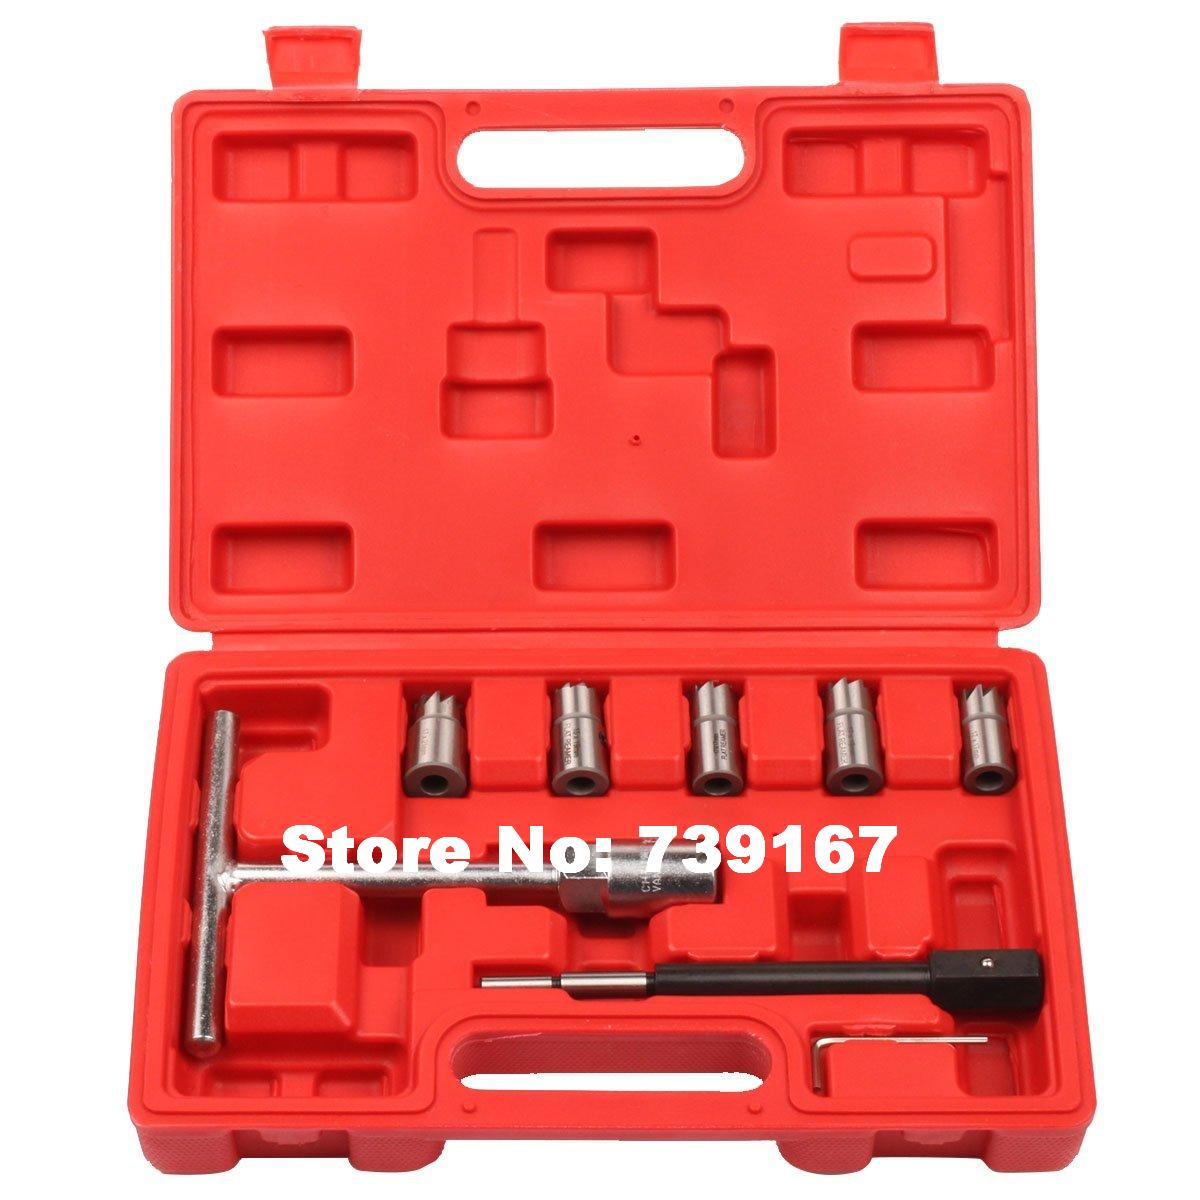 Other Garage Equipment & Tools Garage Equipment & Tools 17pc Diesel Injector Seat Cutter Set BMW Ford Renault Bosch Peugeot Citroen